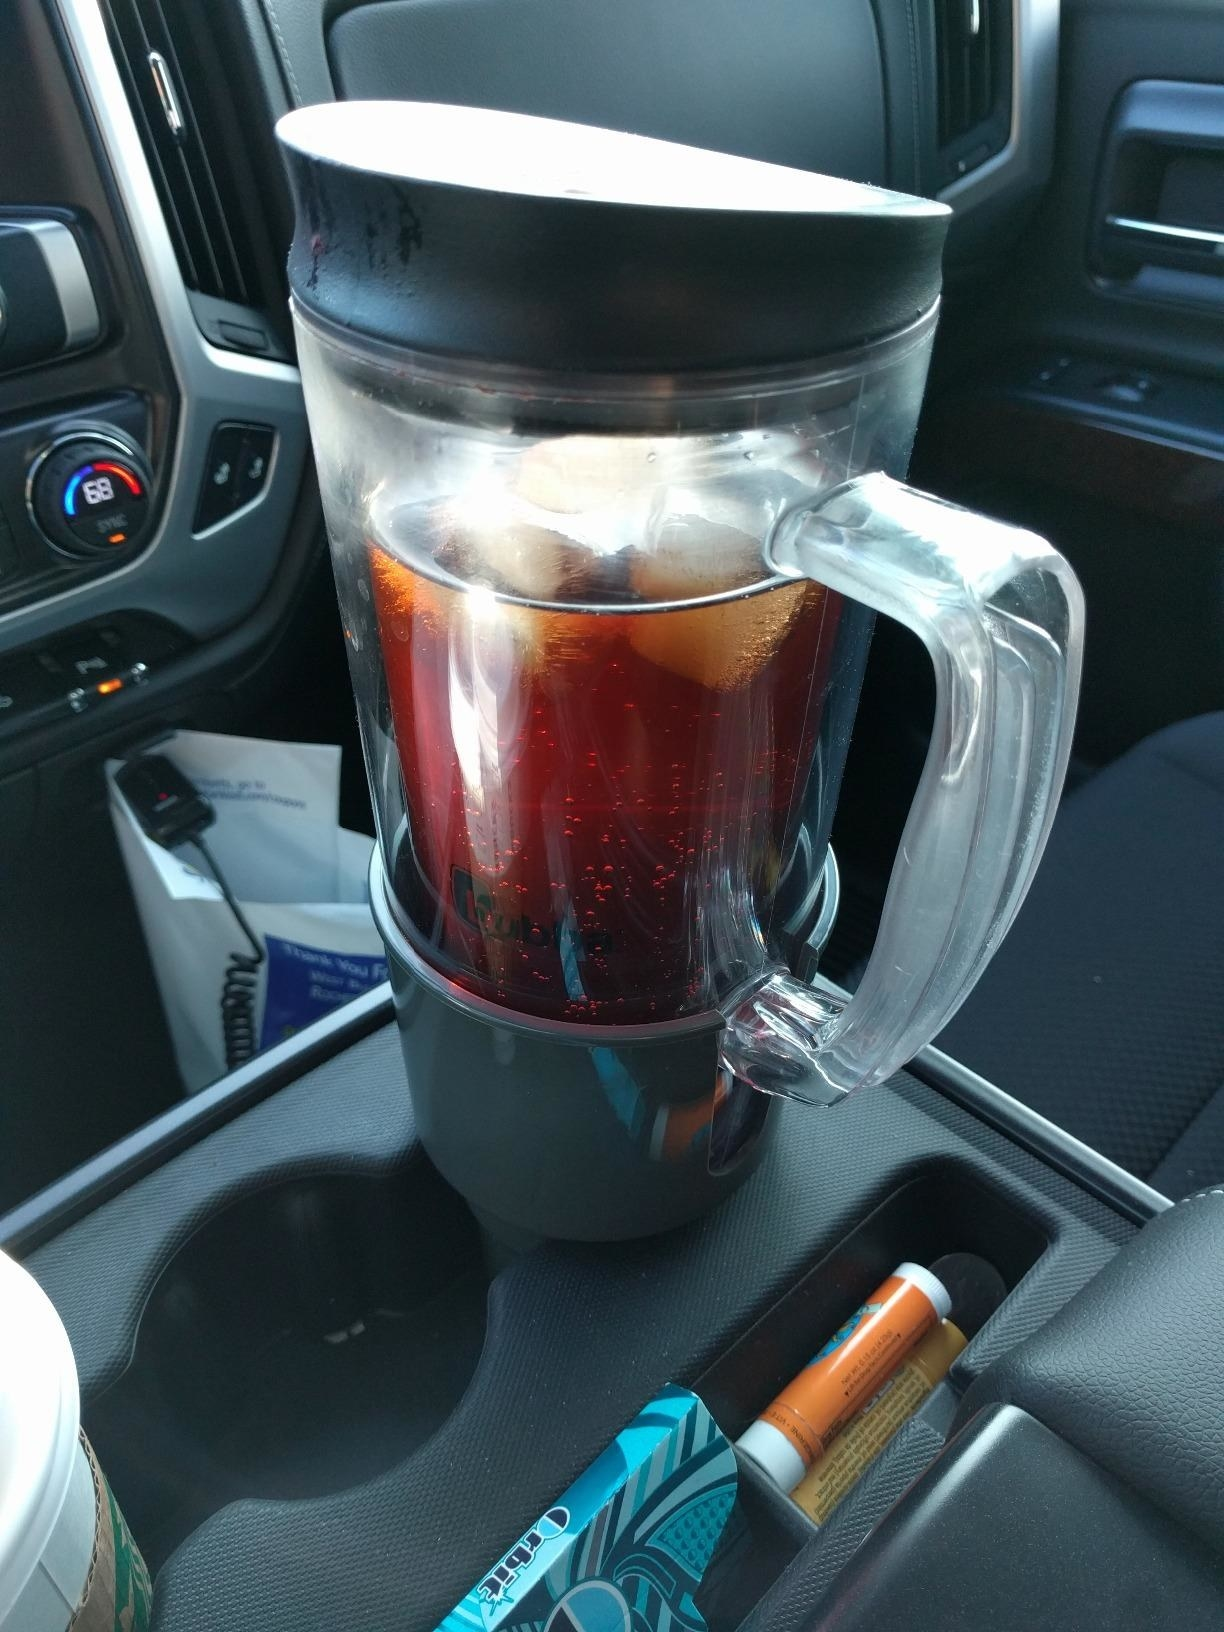 a large cup in the cupholder extender